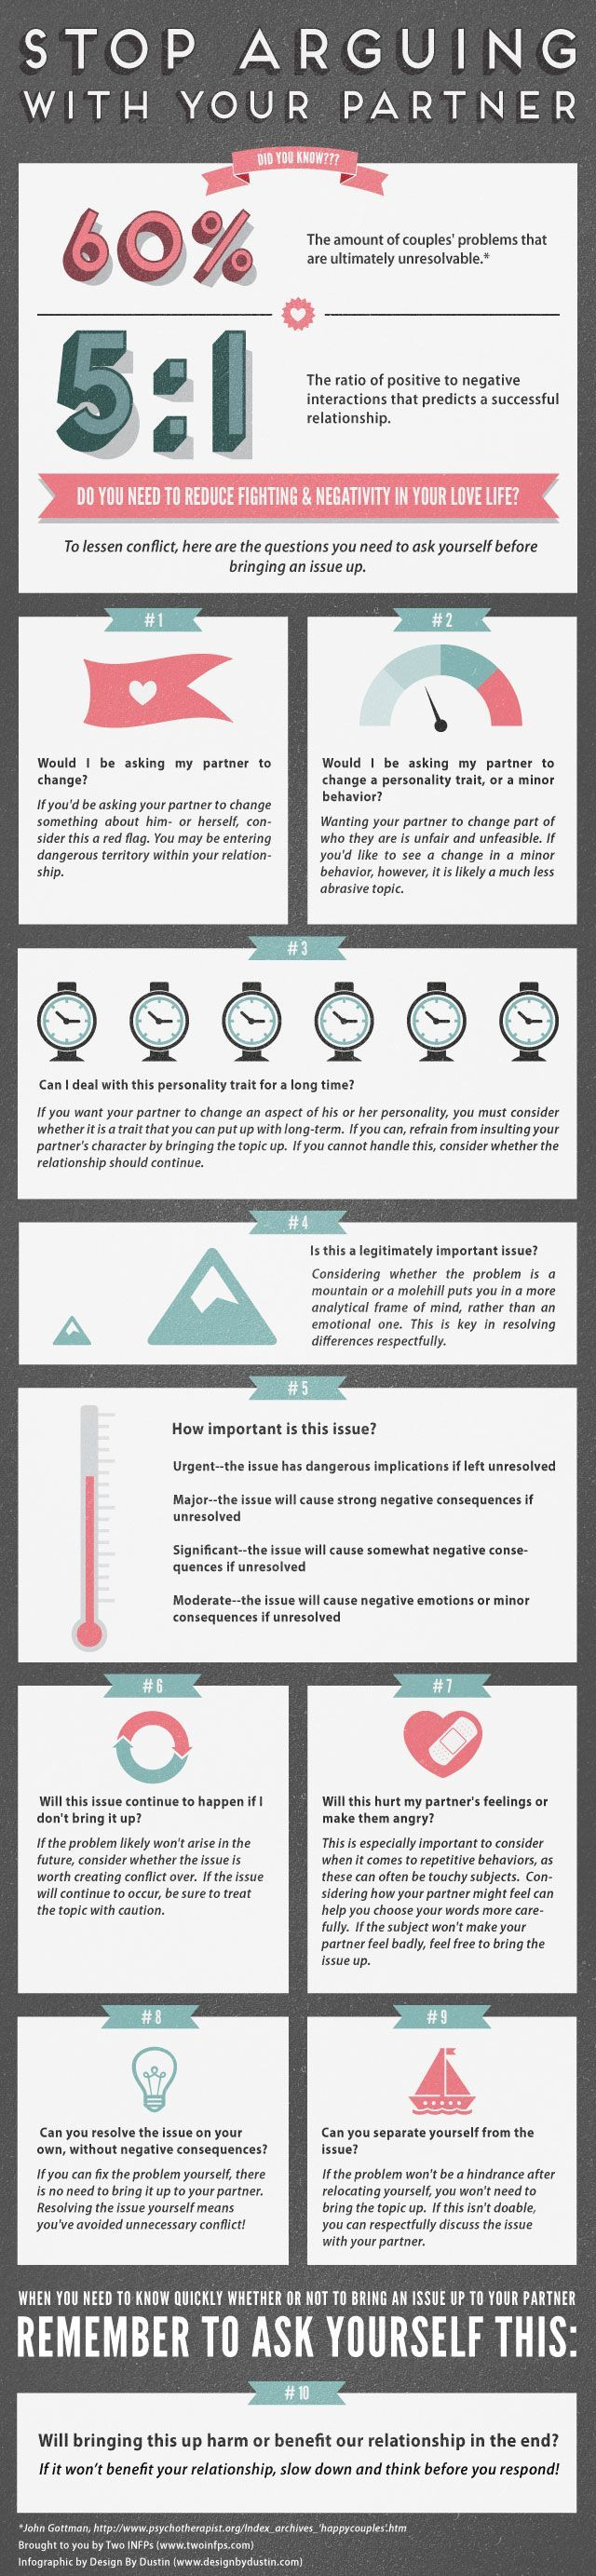 Stop arguing with your partner - how to make your relationship more enjoyable infographic